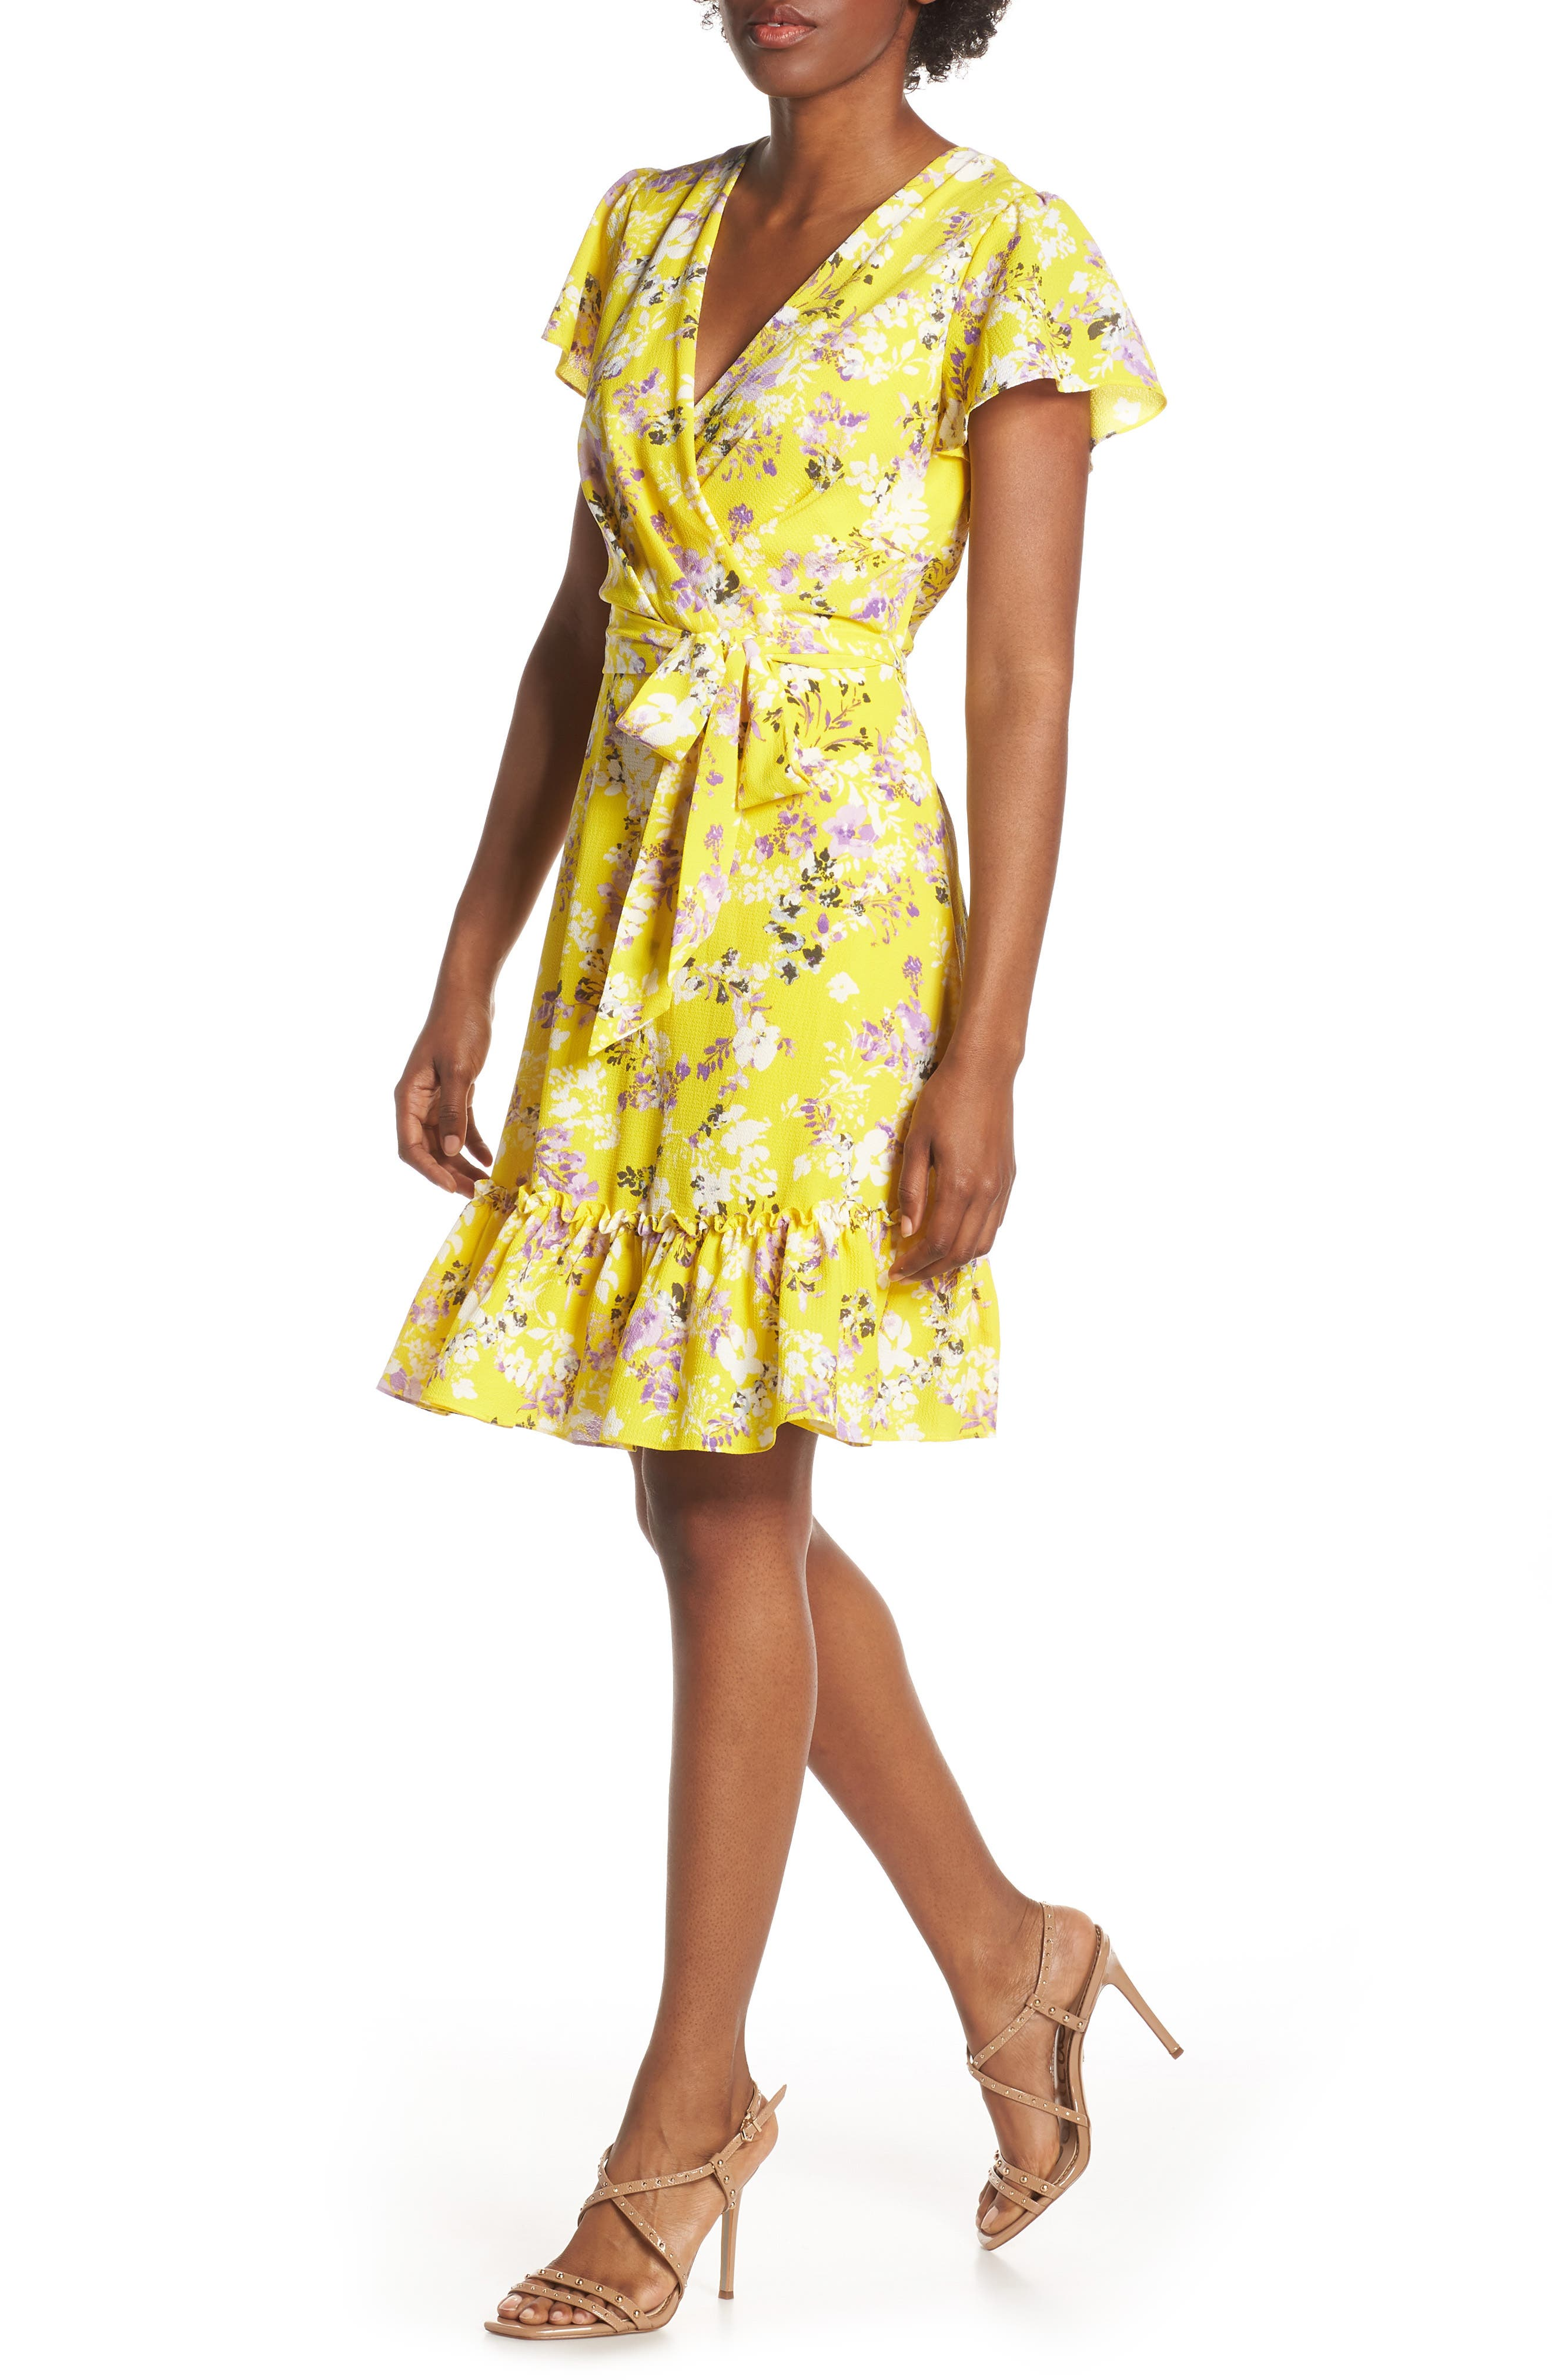 JULIA JORDAN, Floral Wrap Dress, Main thumbnail 1, color, YELLOW MULTI